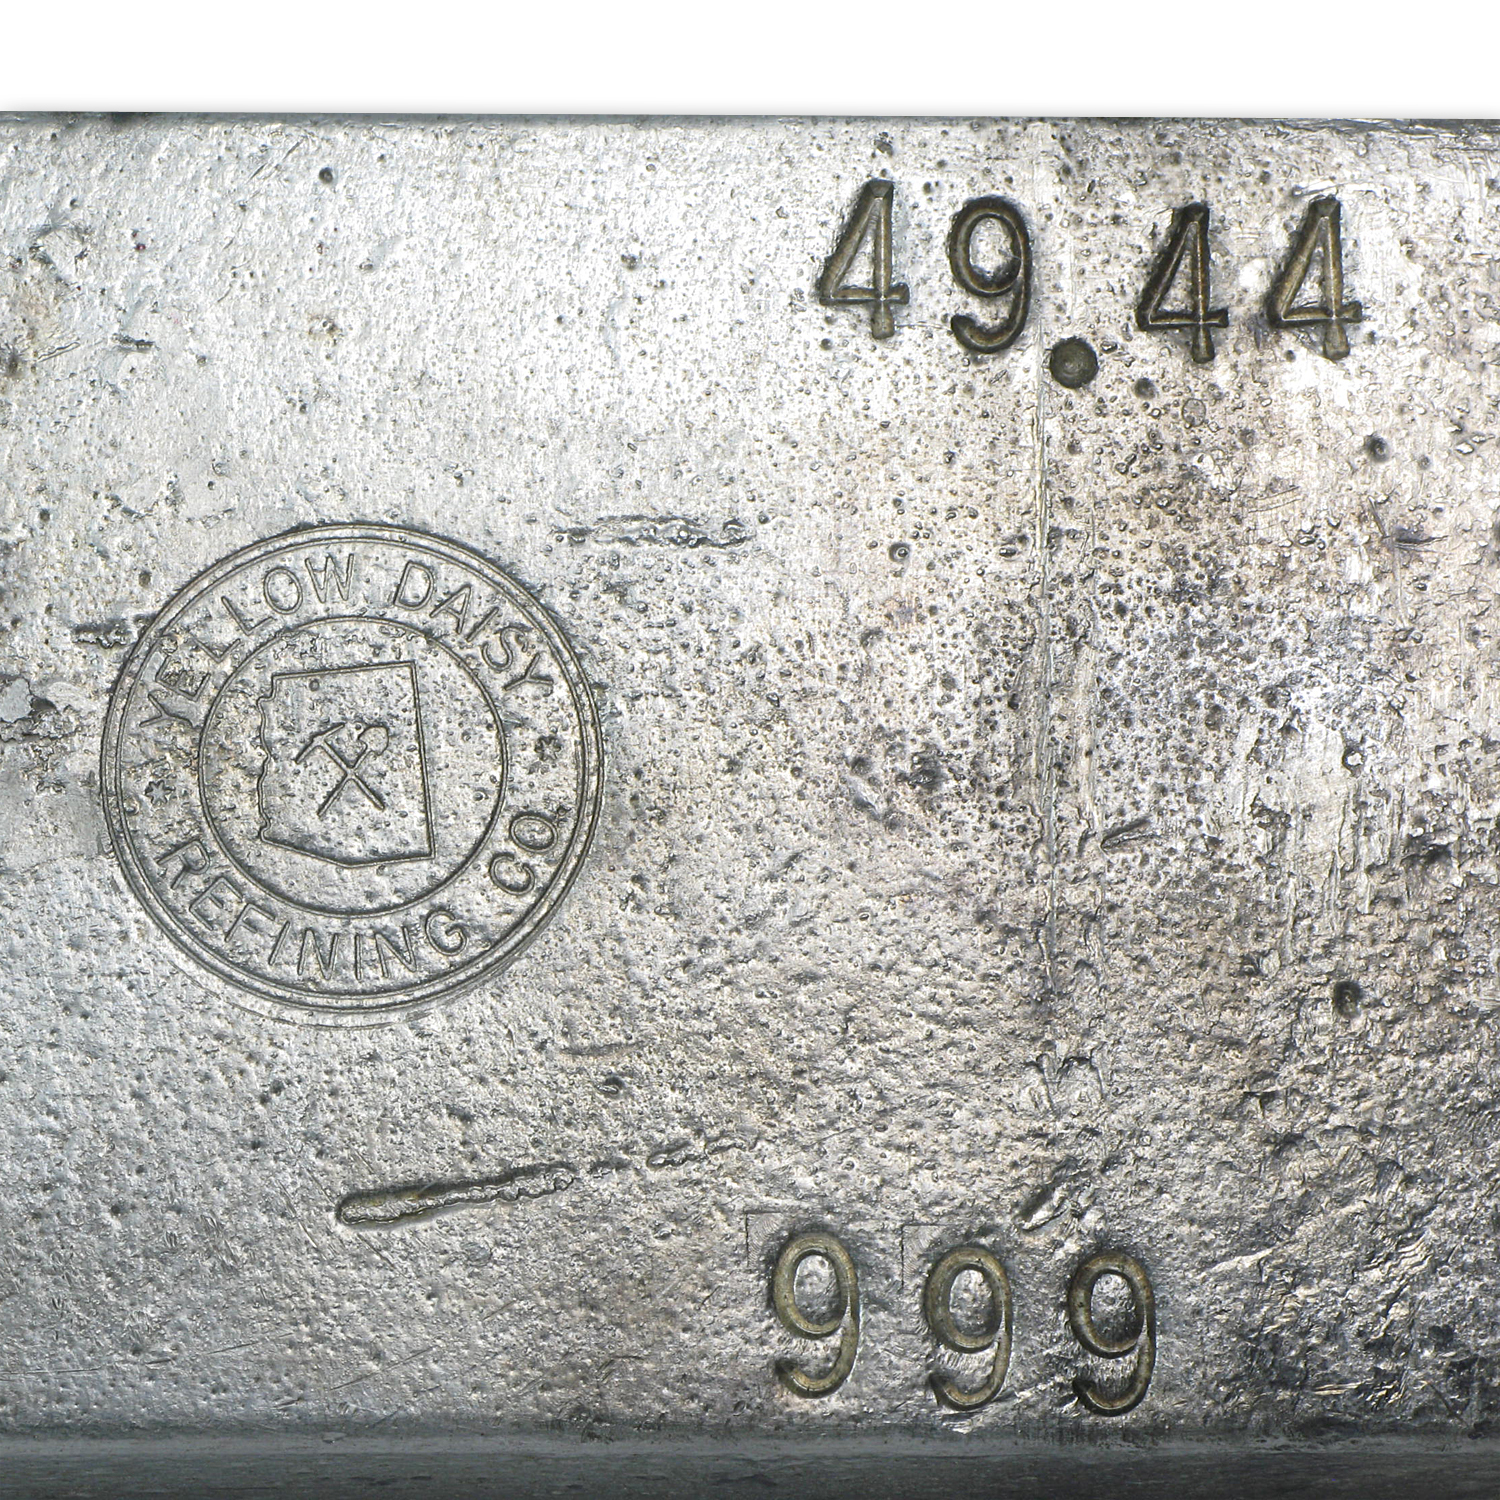 49.44 oz Silver Bar - Yellow Daisy Refining Co.